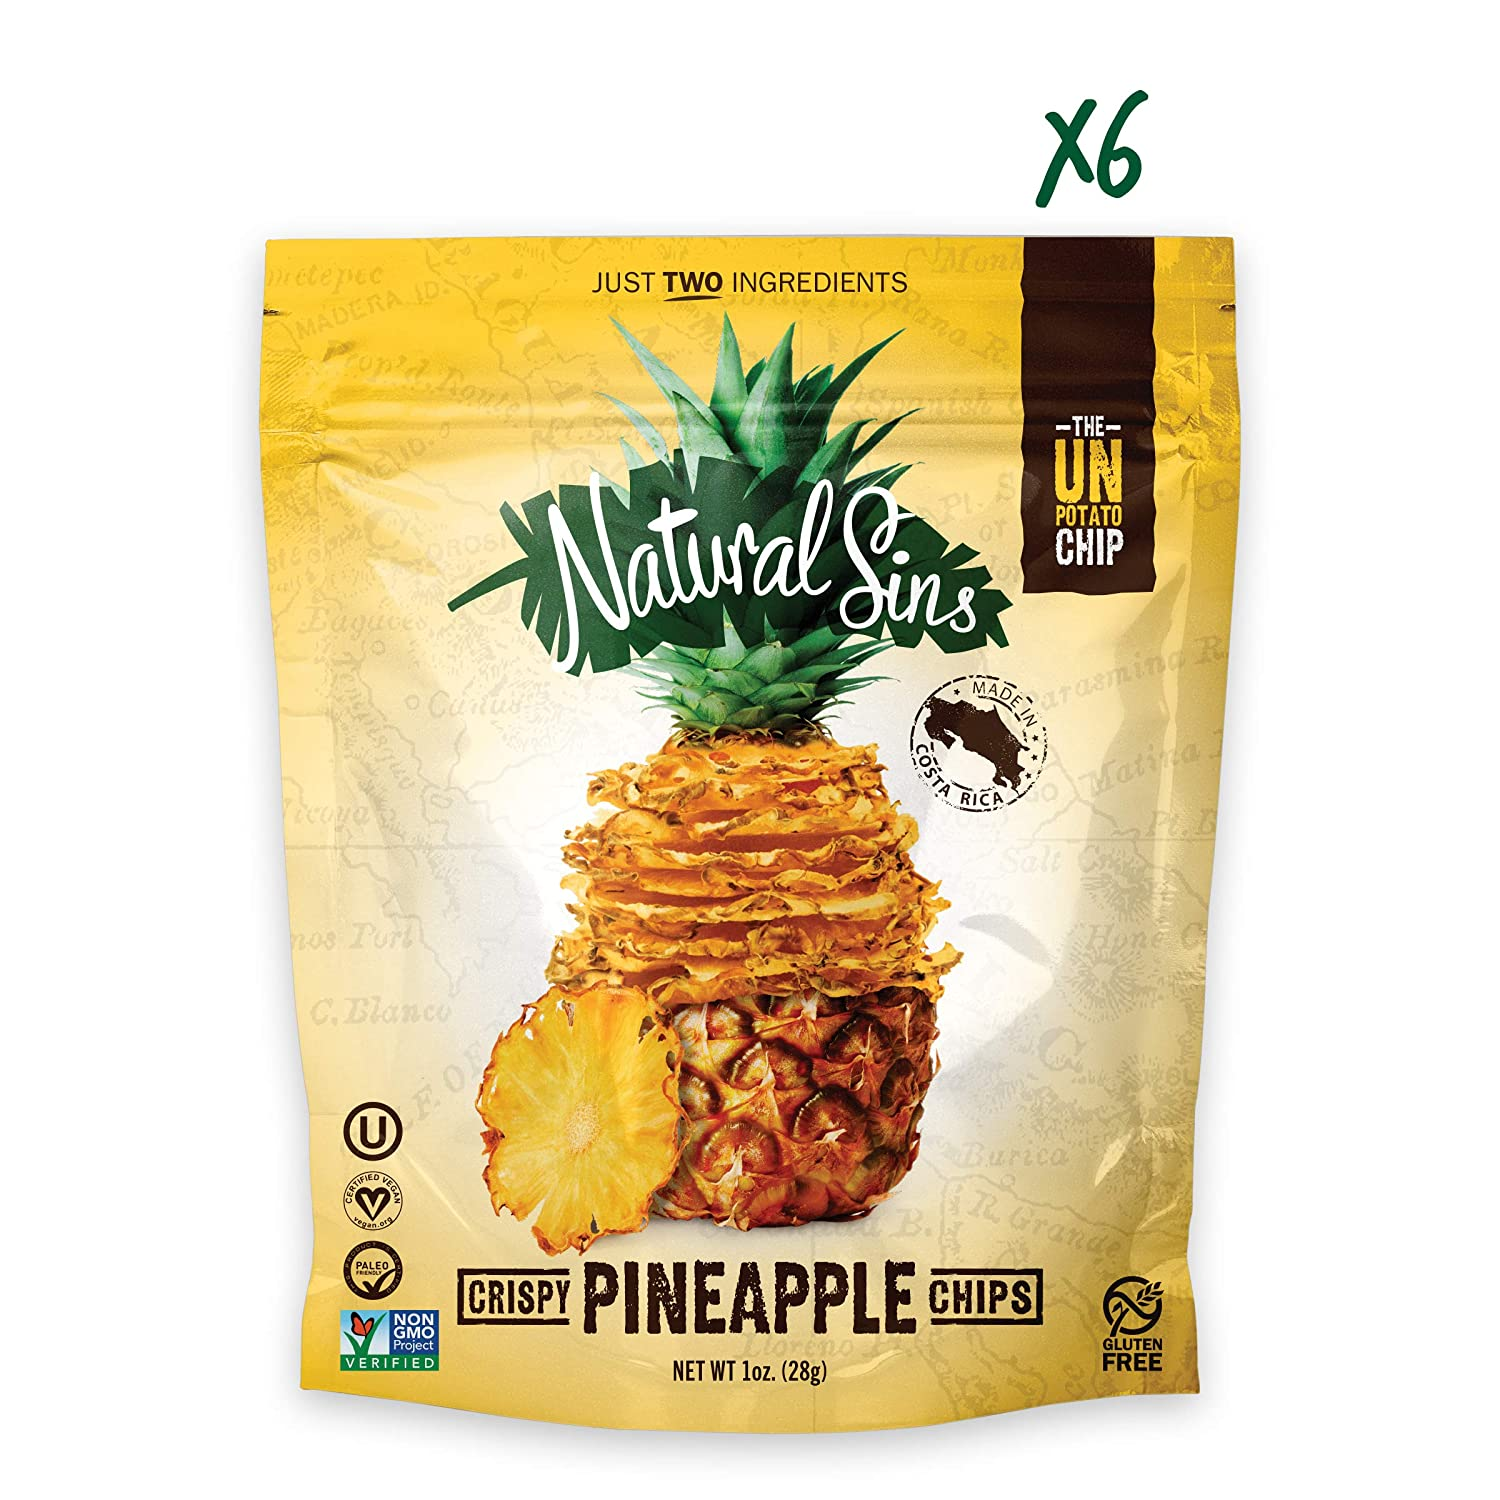 Crispy Pineapple Chip - Naturals Sins - Certified Paleo Friendly by the Paleo Foundation